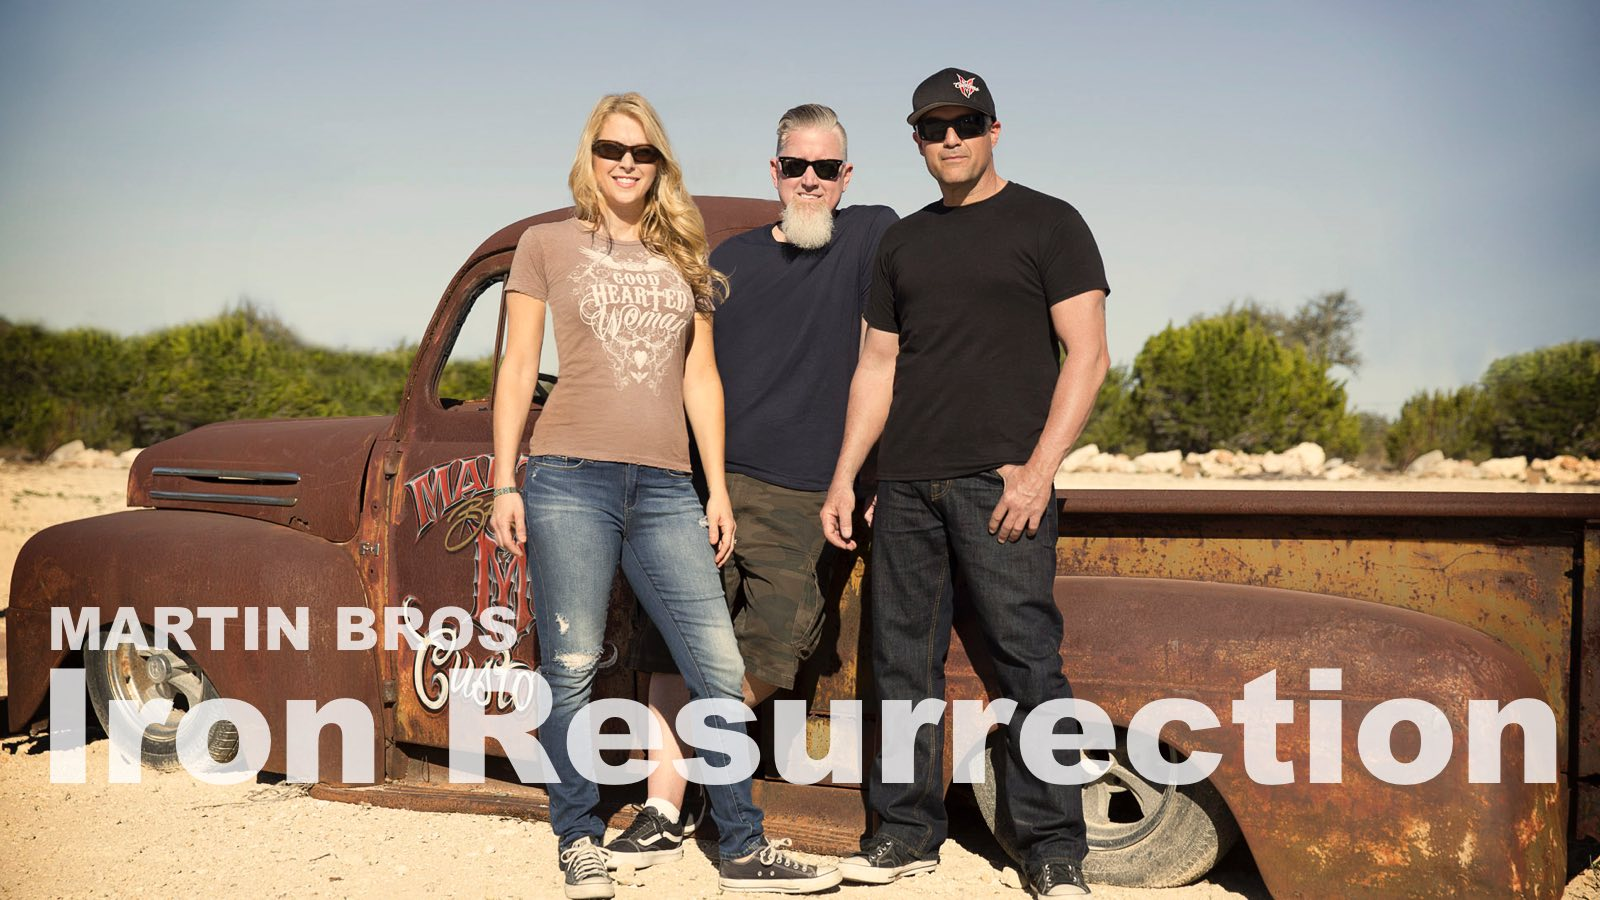 Martin Bros: Iron Resurrection - new show on Velocity Channel